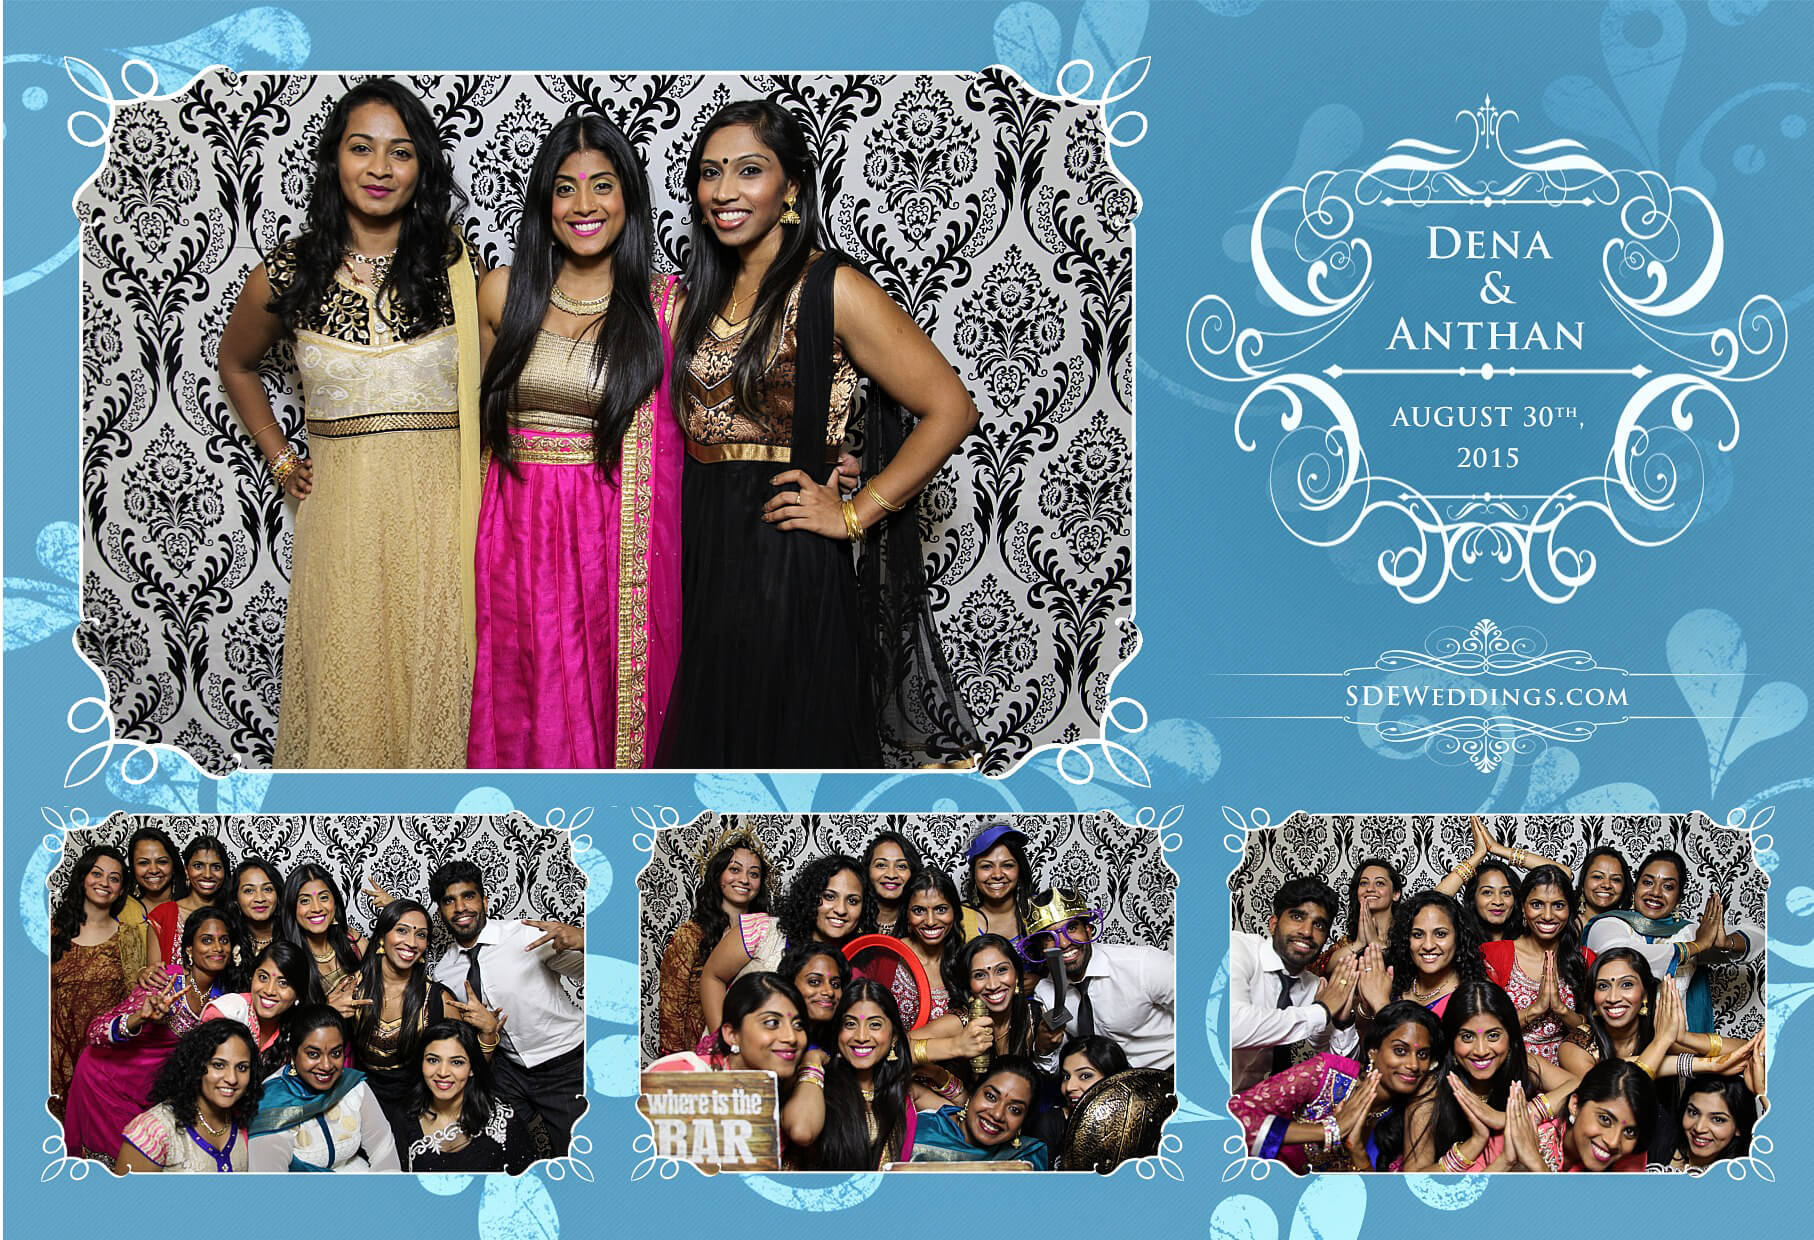 Toronto Photo Booth Rental at Peter and Paul Banquet Hall 7